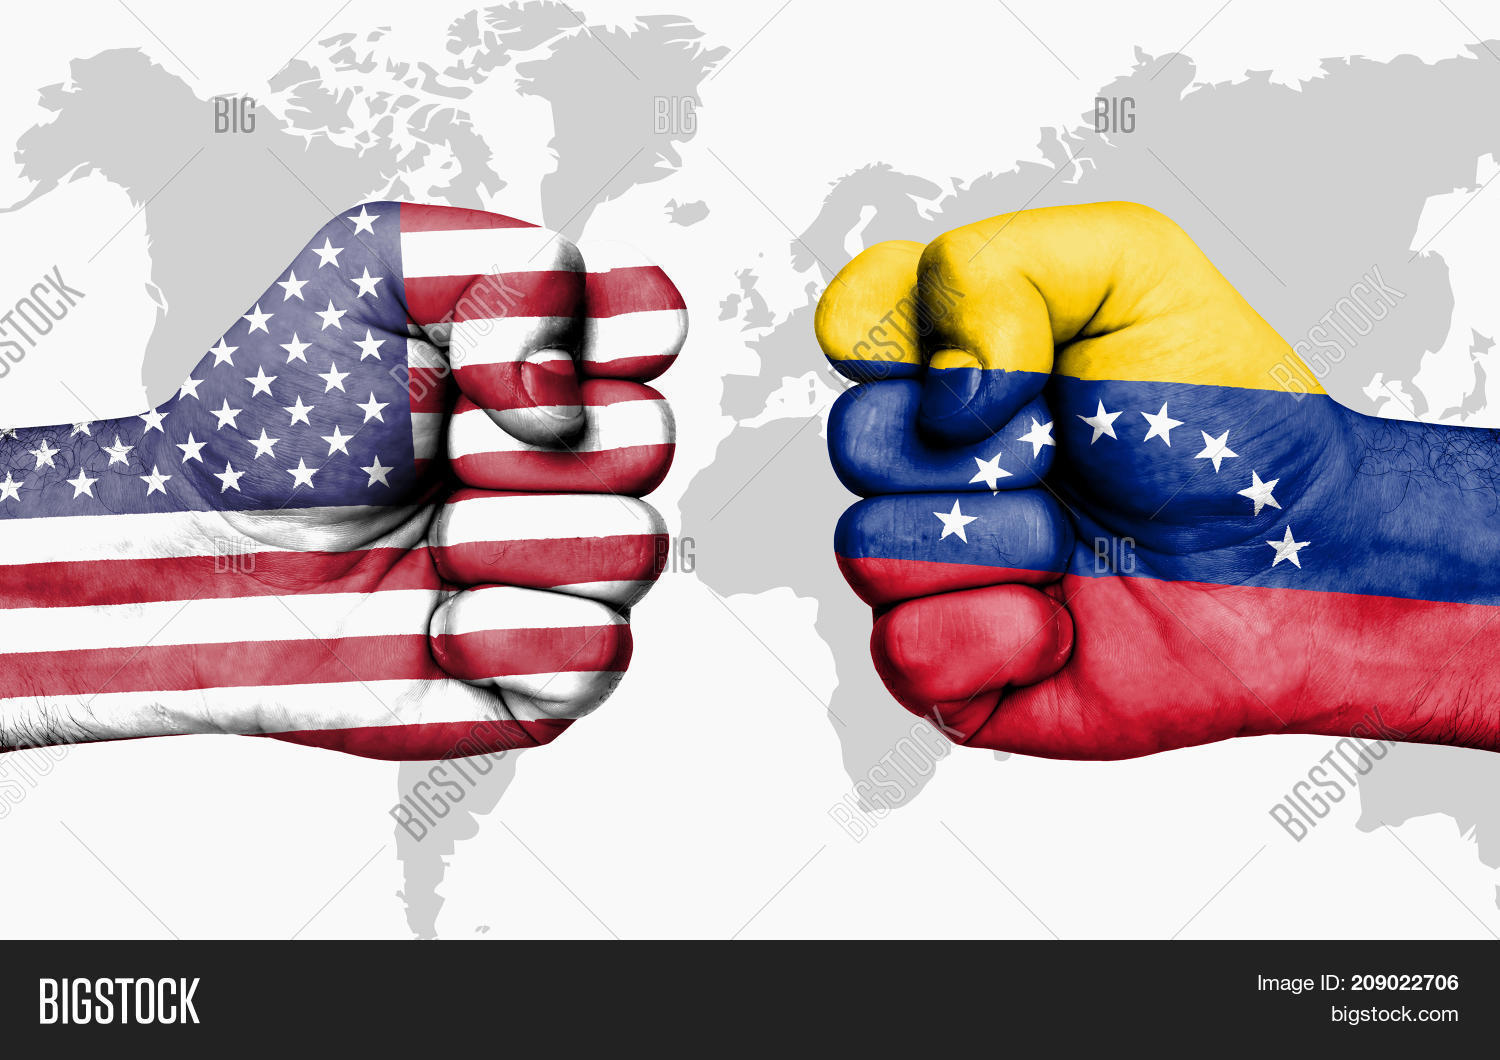 USA requires two Venezuelan diplomats to leave the country in 48 hours